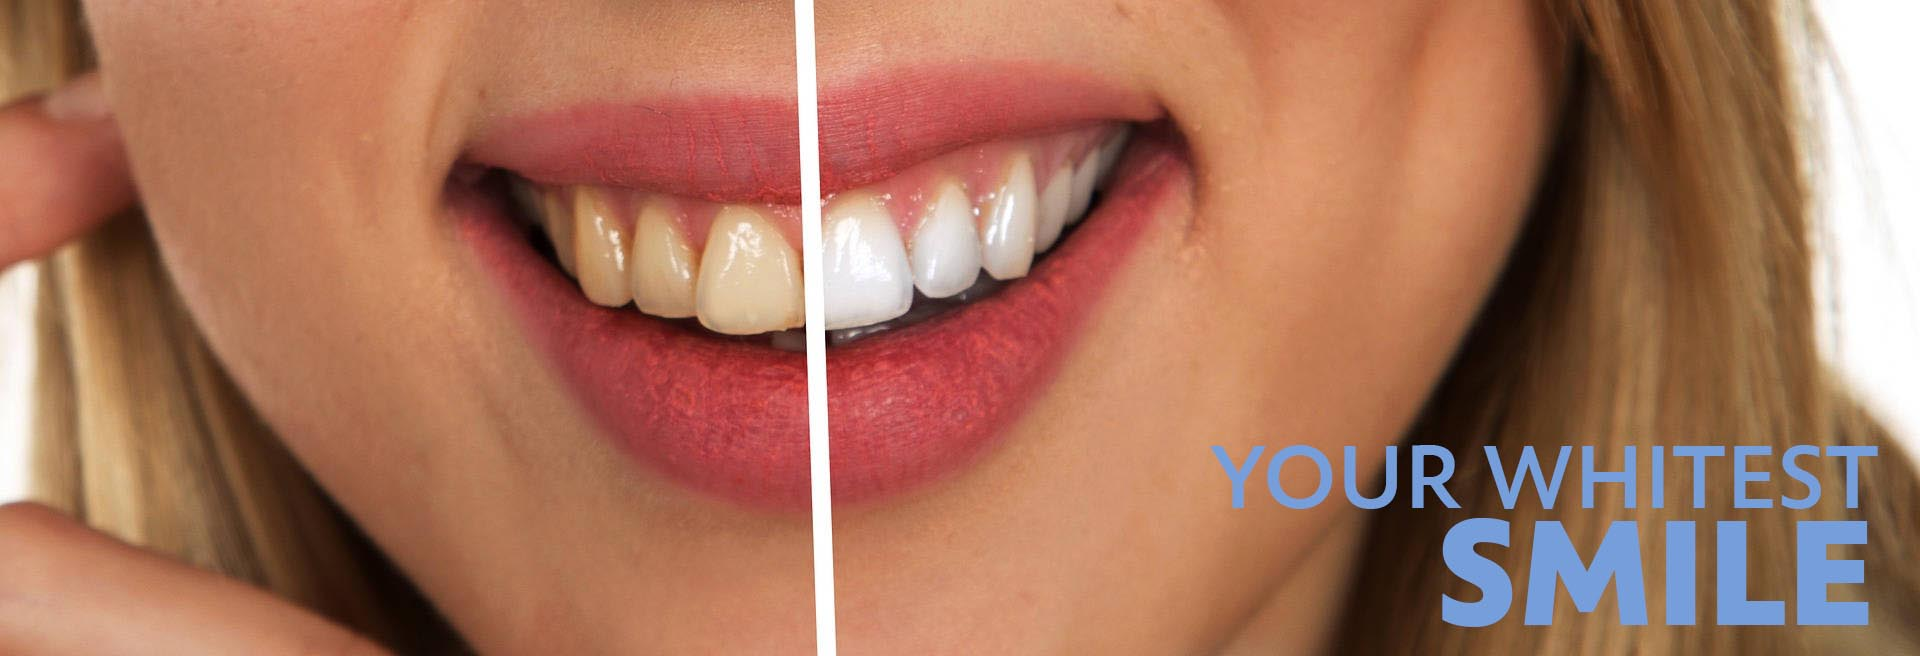 Image of tooth whitening results, before and after, at Clínica Dental Moraira